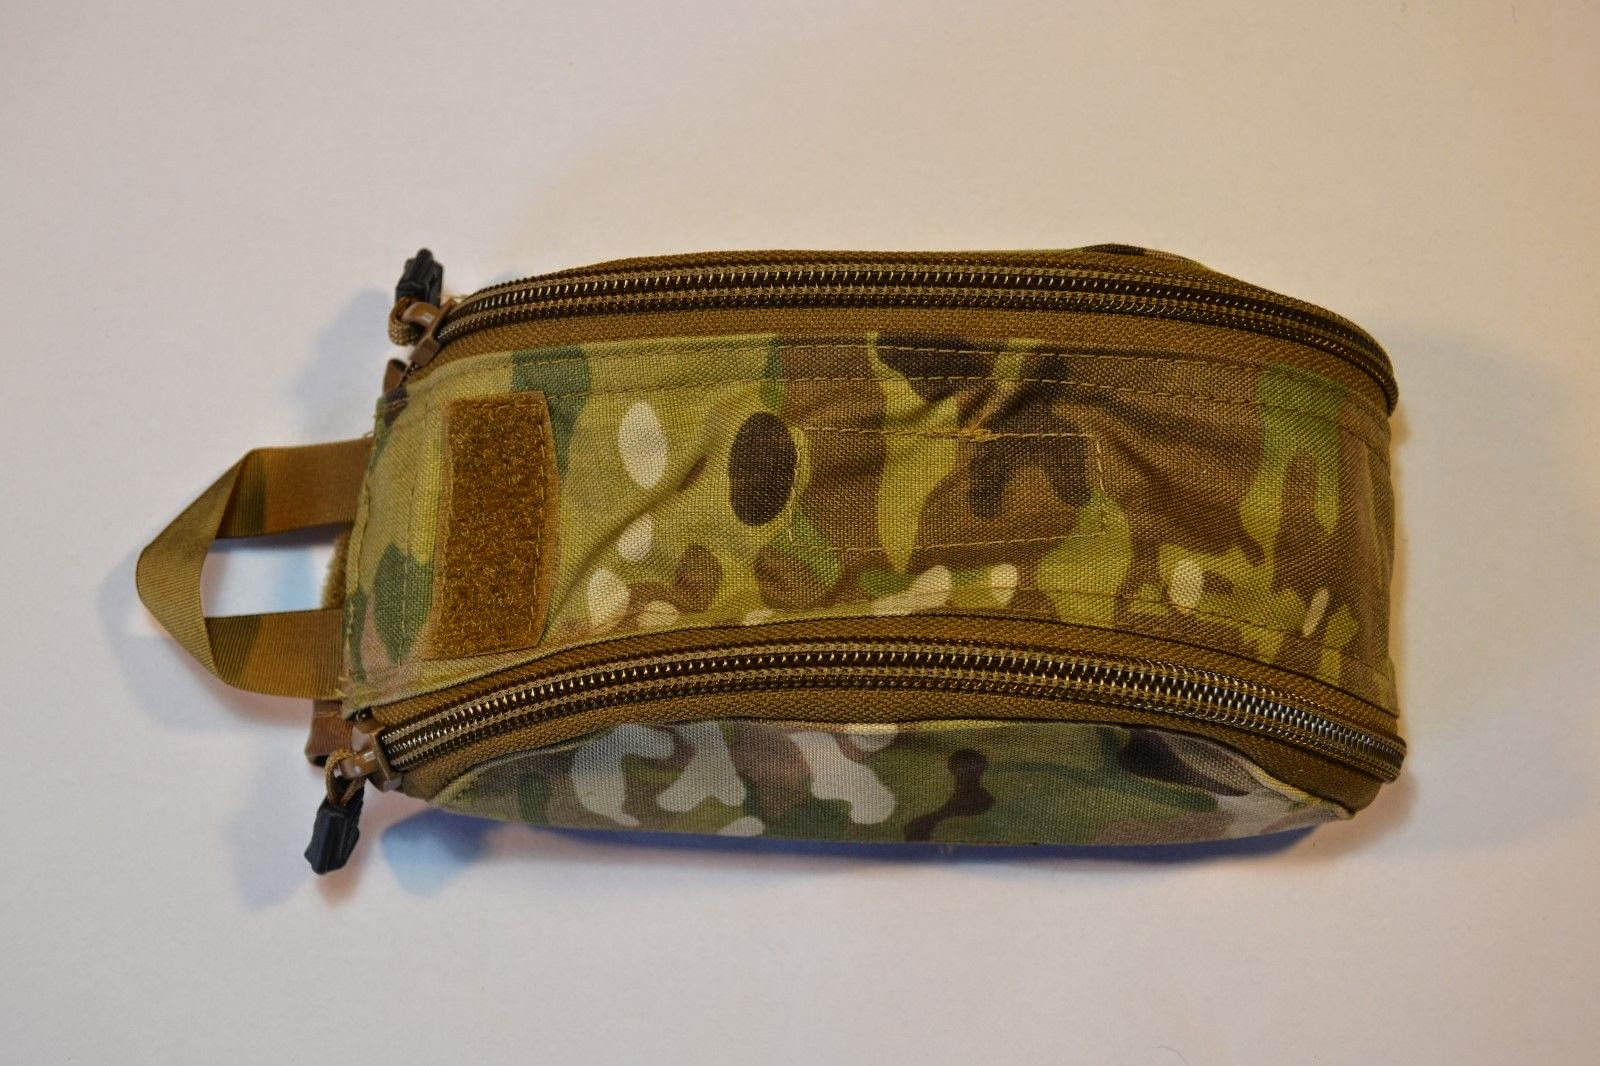 webbingbabel: North American Rescue NAR Eagle IFAK Pouch